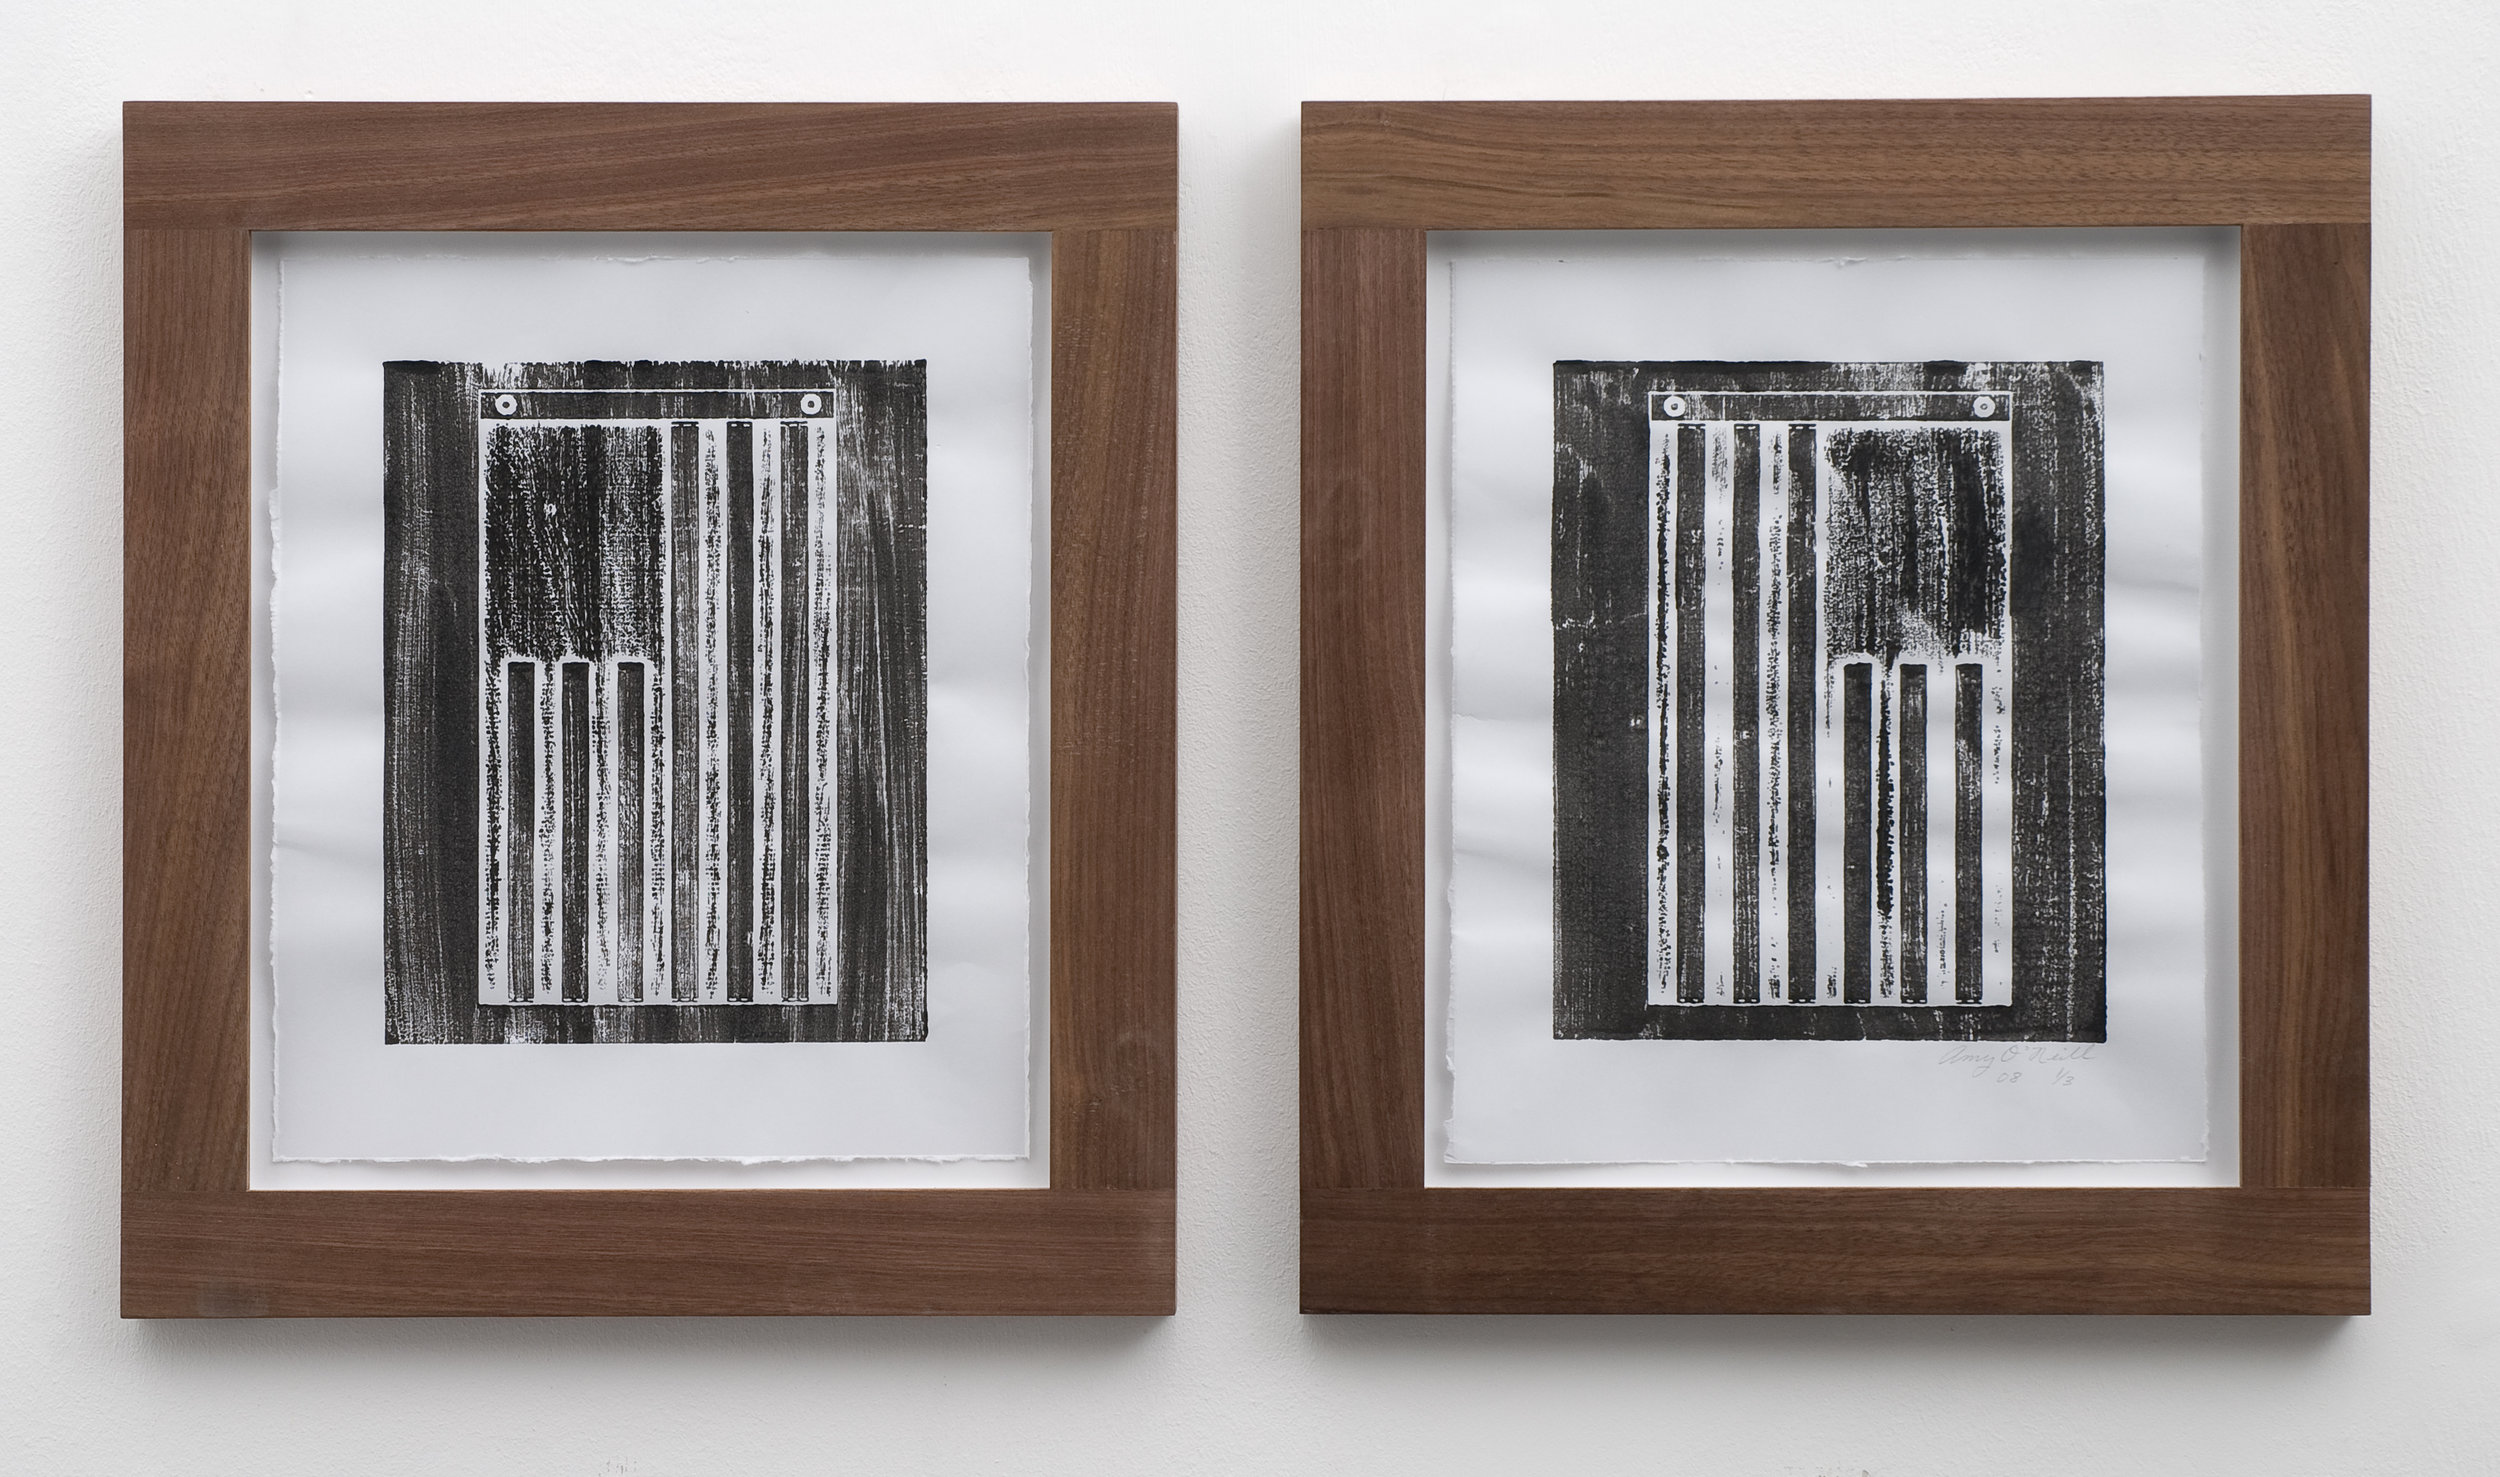 Stripes, 2008 woodcut prints 32 x 26,5 cm - 12 1/2 x 10 3/8 inches (each)